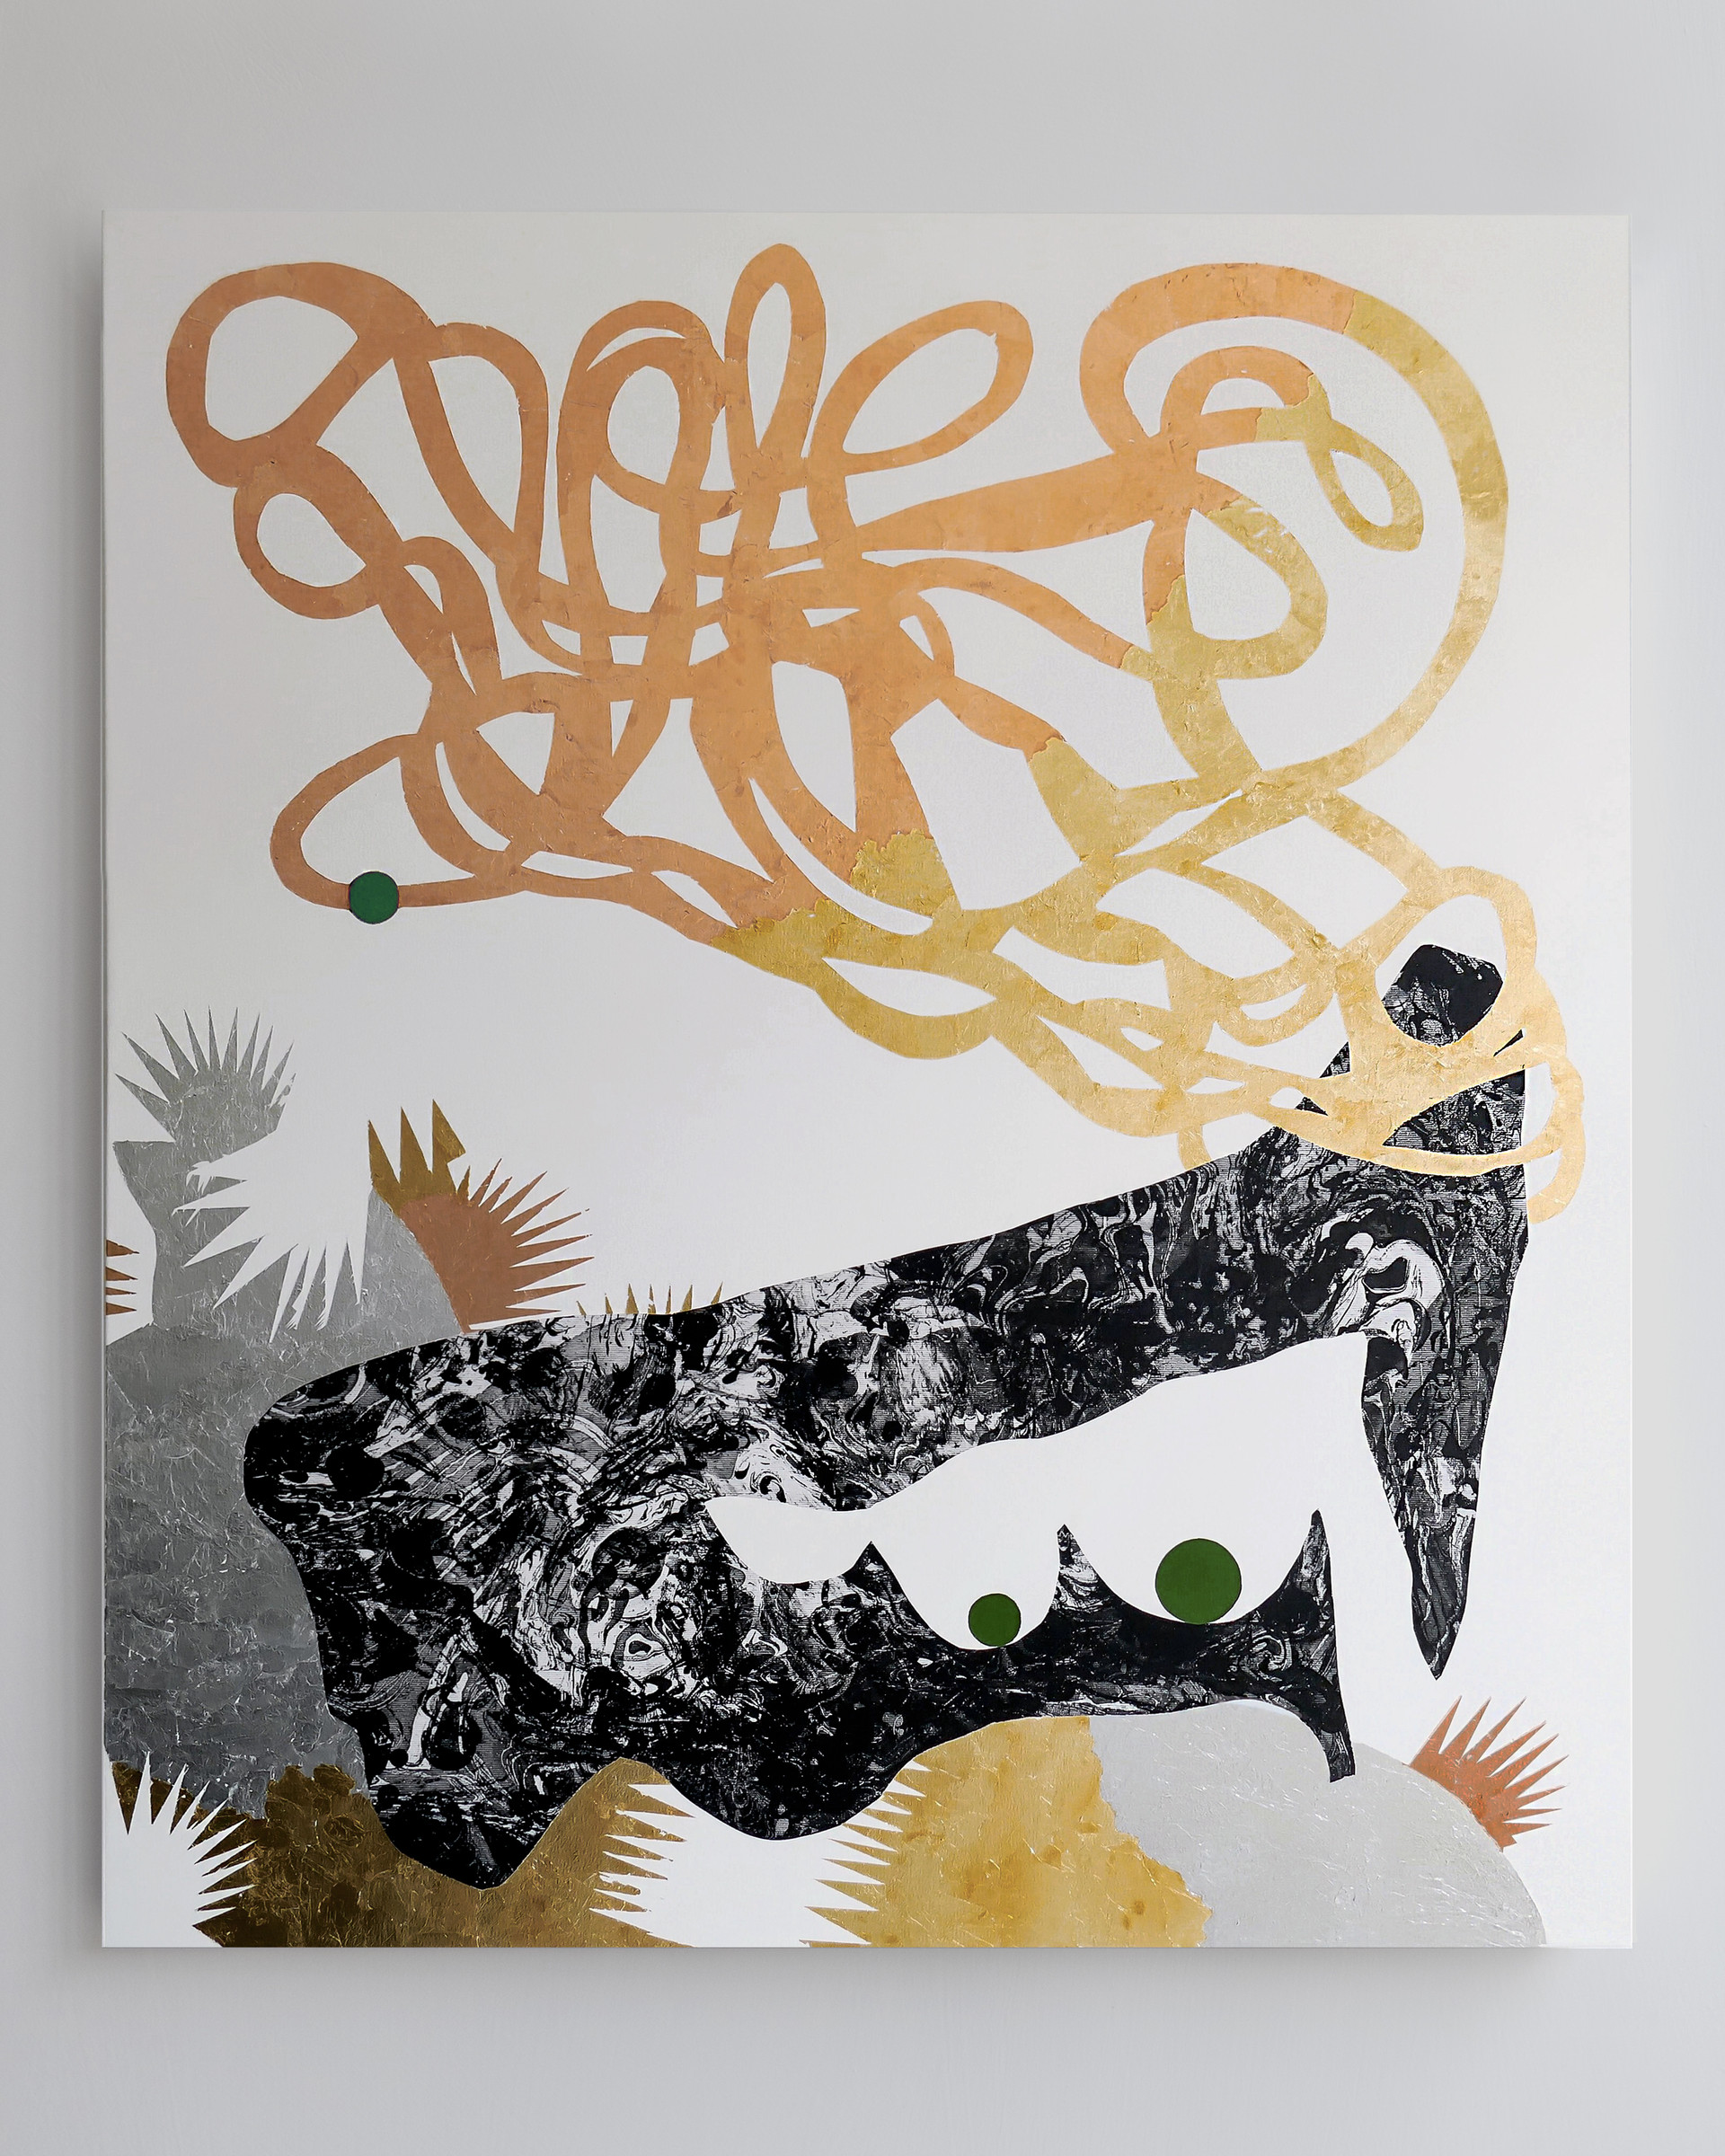 Portrait of a horny loner 2018 Gold foil, silver foil, copper foil and acrylic on printed marbled canvas 140x160cm